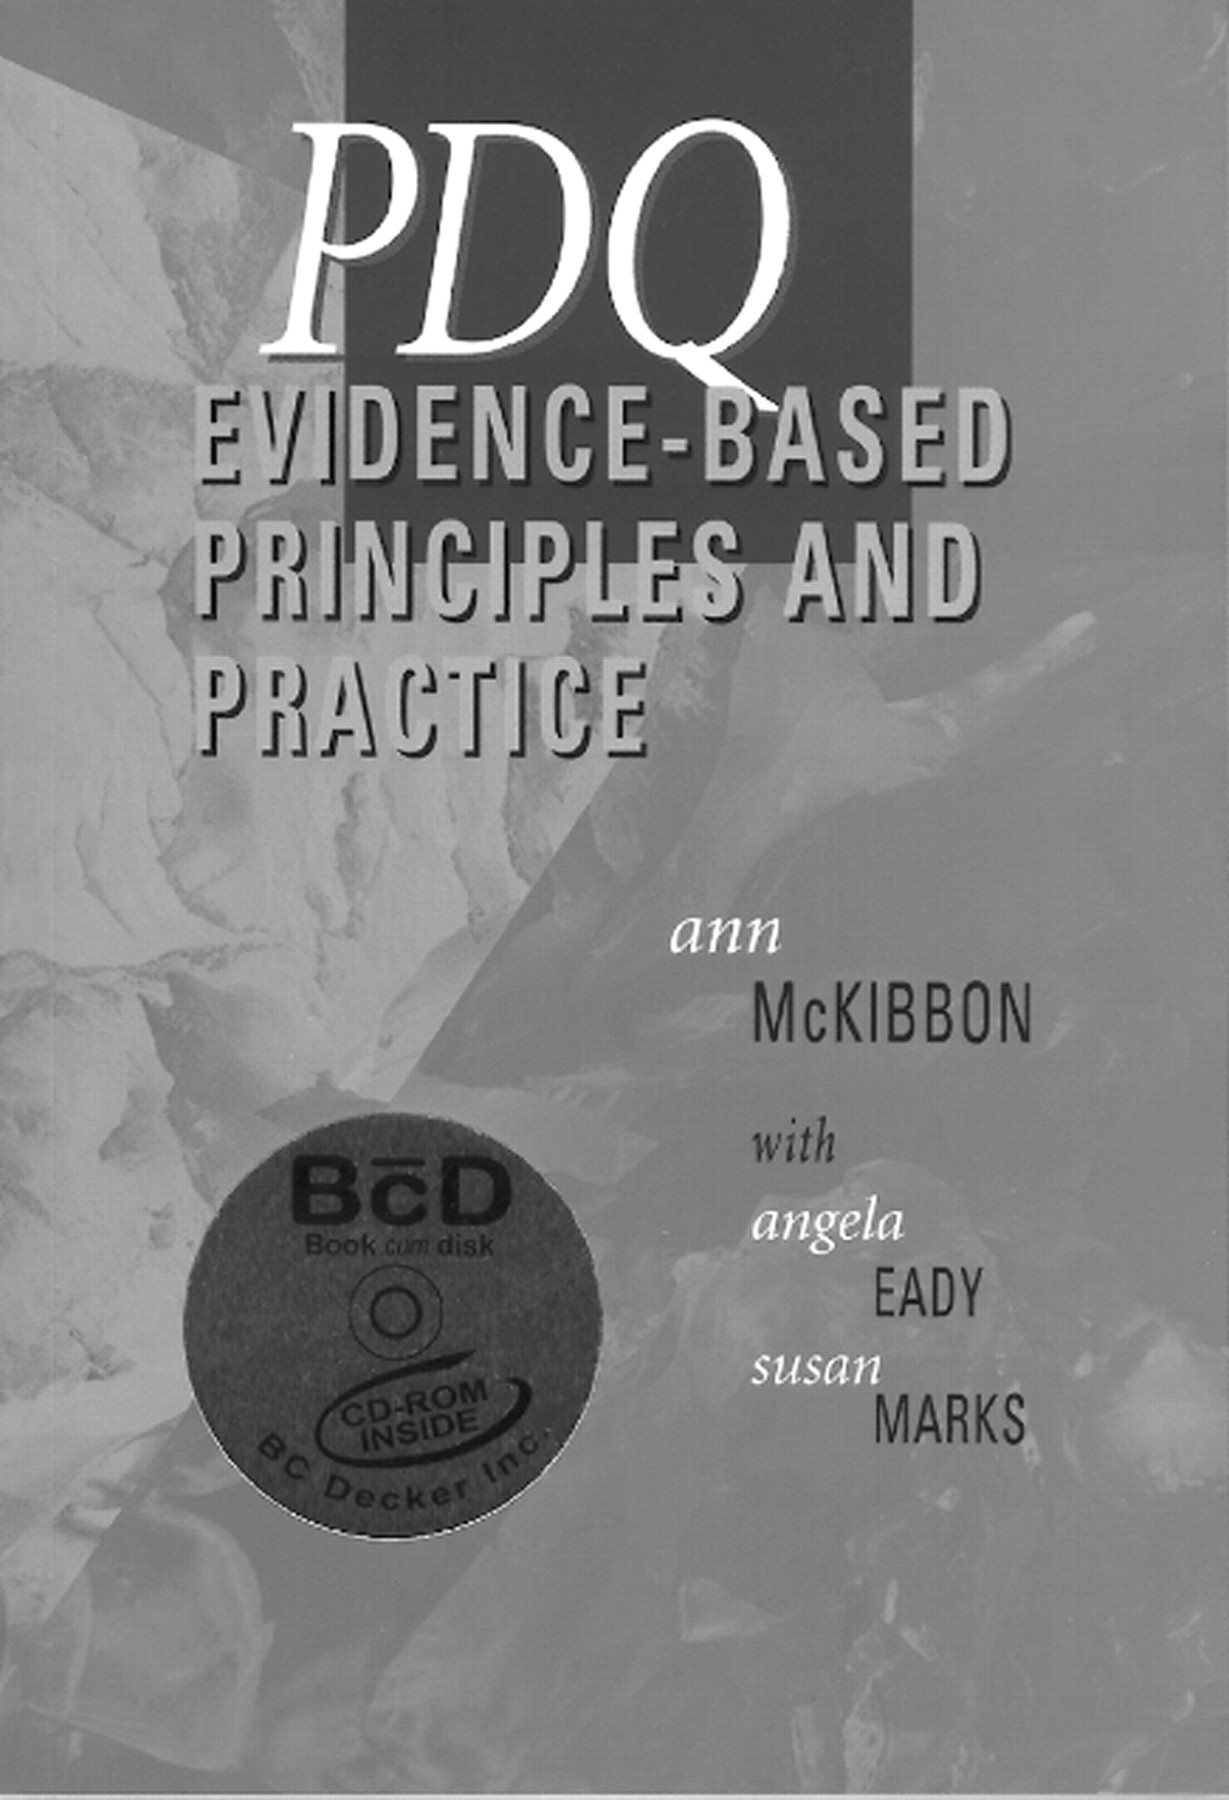 PDQ evidence-based principles and practice | BMJ Evidence